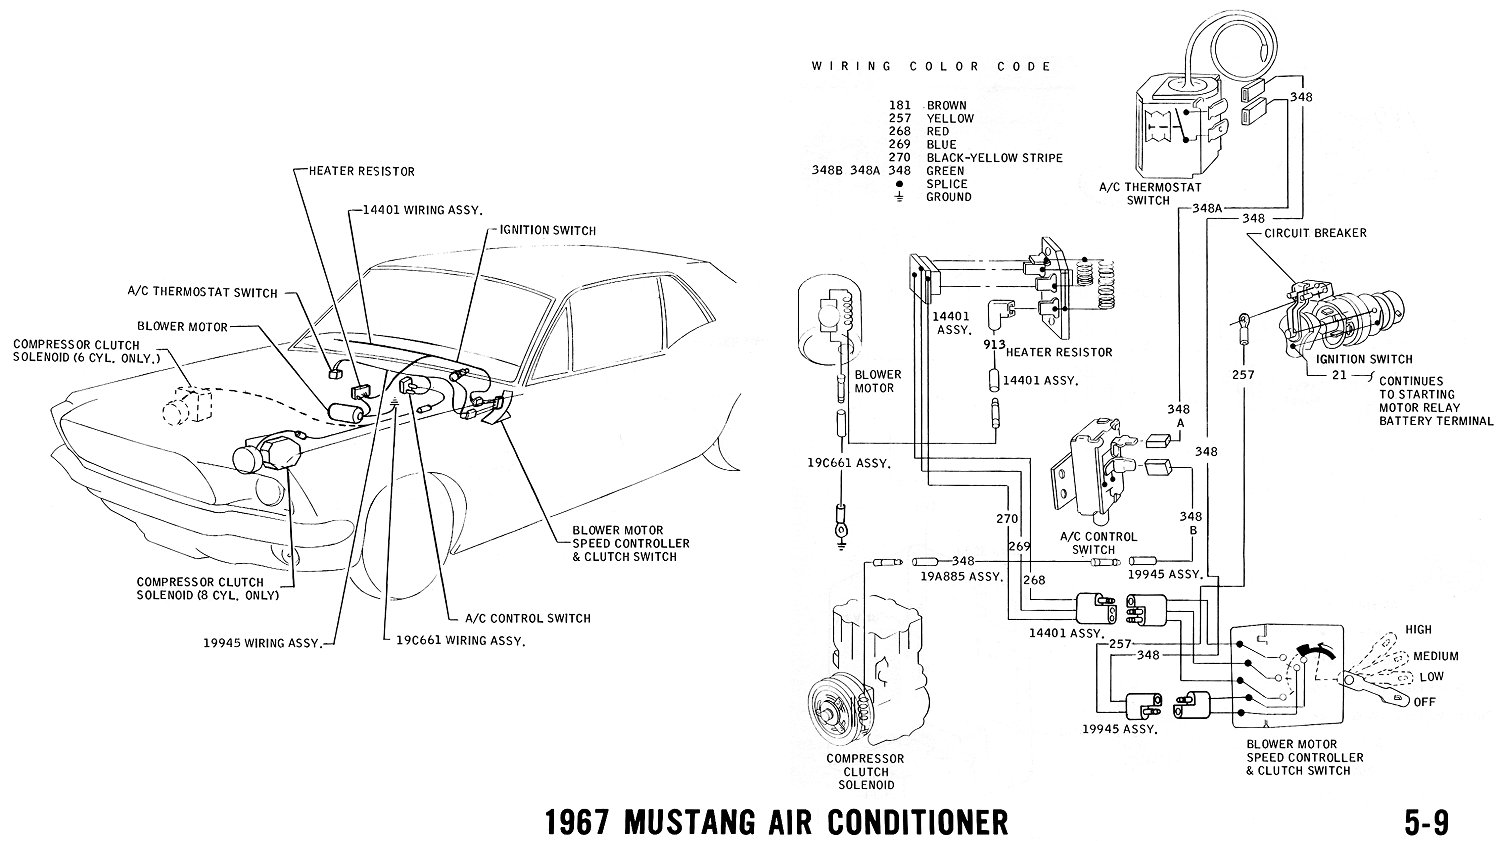 67ac 1967 mustang wiring and vacuum diagrams average joe restoration 1967 mustang ignition switch wiring diagram at gsmportal.co